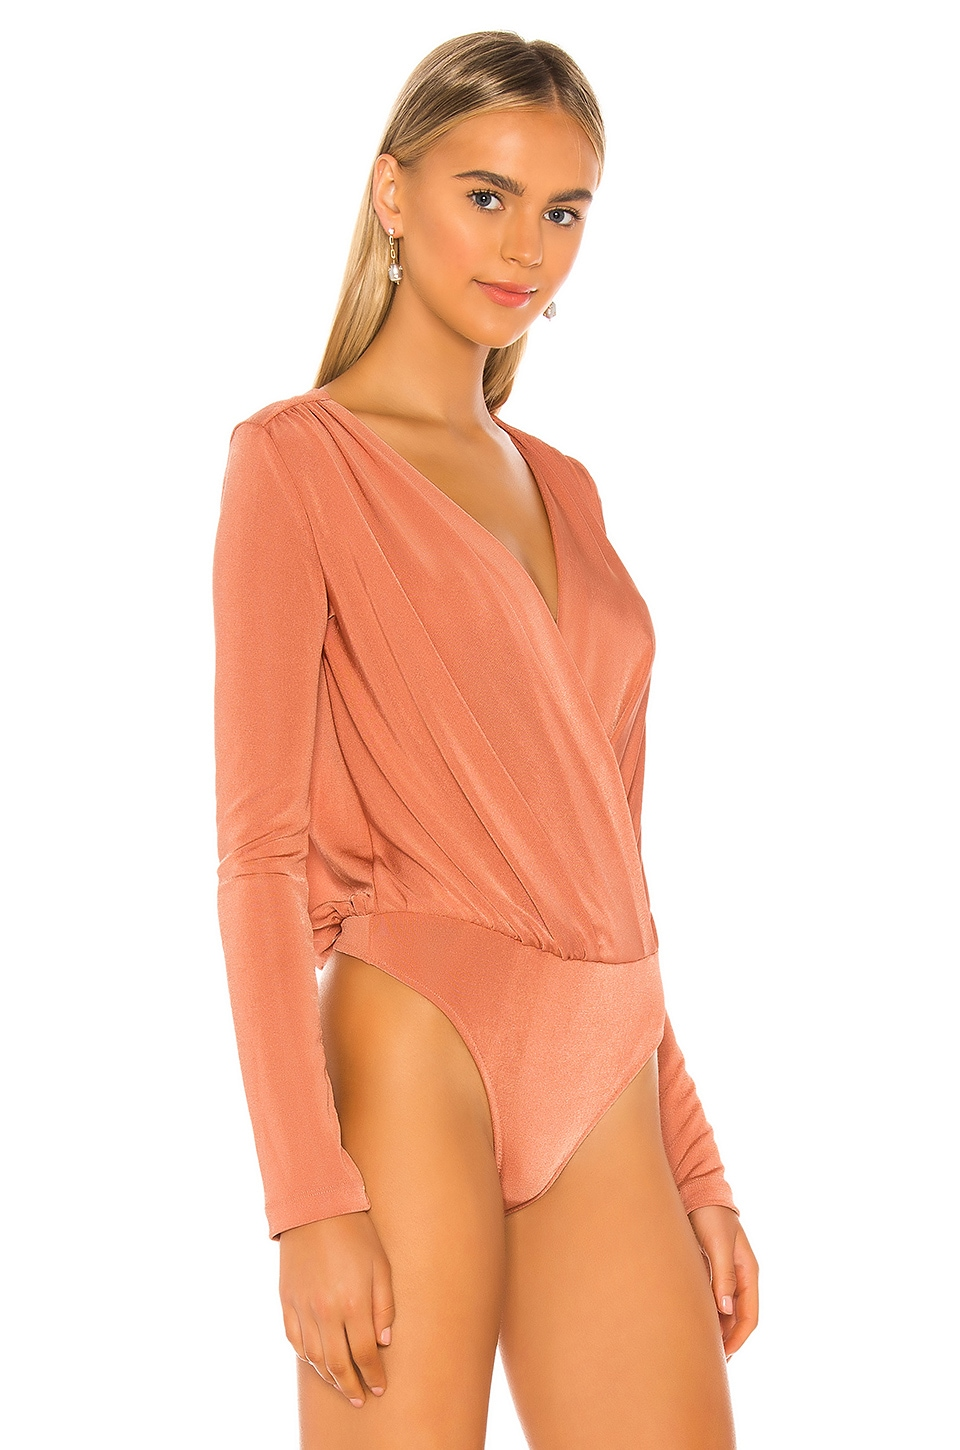 Turnt Bodysuit, view 3, click to view large image.